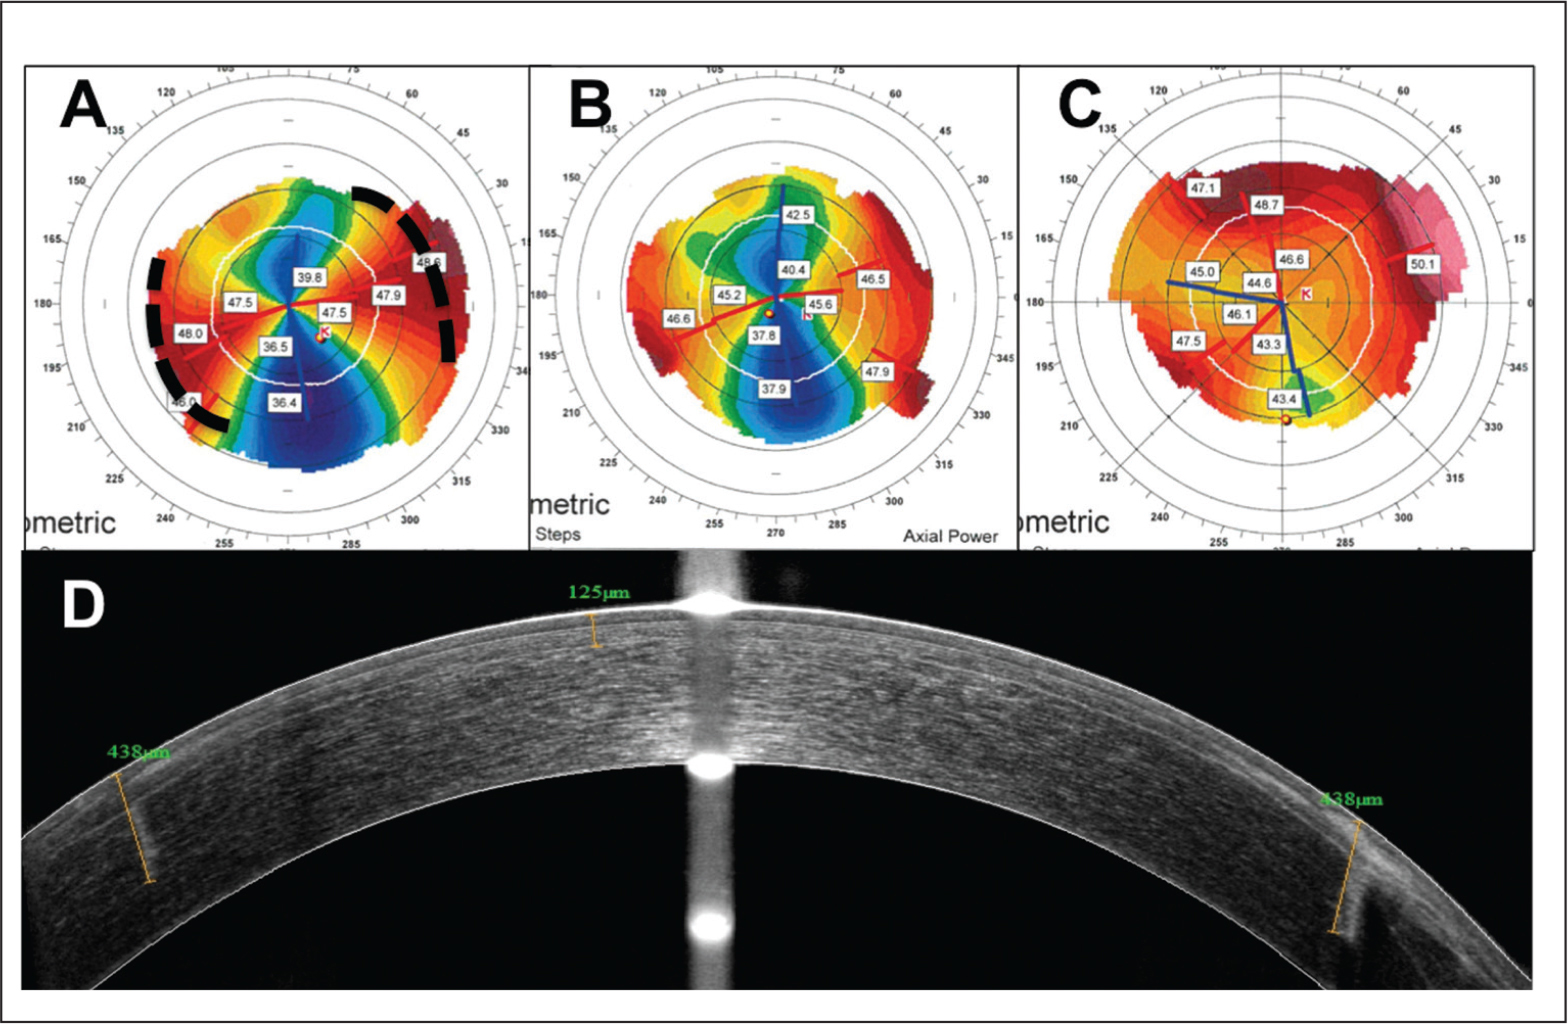 Representative results for a patient treated by deep intrastromal arcuate keratotomy with in situ keratomileusis. (A) Preoperative Orbscan (Bausch & Lomb, Rochester, NY) with two arcuate keratotomies drawn, (B) after phase 1 and (C) after phase 2. (D) Corneal anterior segment optical coherence tomography, sagittal view, with visualization of the arcuate keratotomies, and the corneal flap marked at 125 µm on this image. In this example, the two arcuate keratotomies were at 15° and 195°, with a length of 80° from 130 to 440 µm, and an optical zone of 6 mm. The flap was at 130 µm, on a cornea that was initially 550 µm thick at its thinnest point.